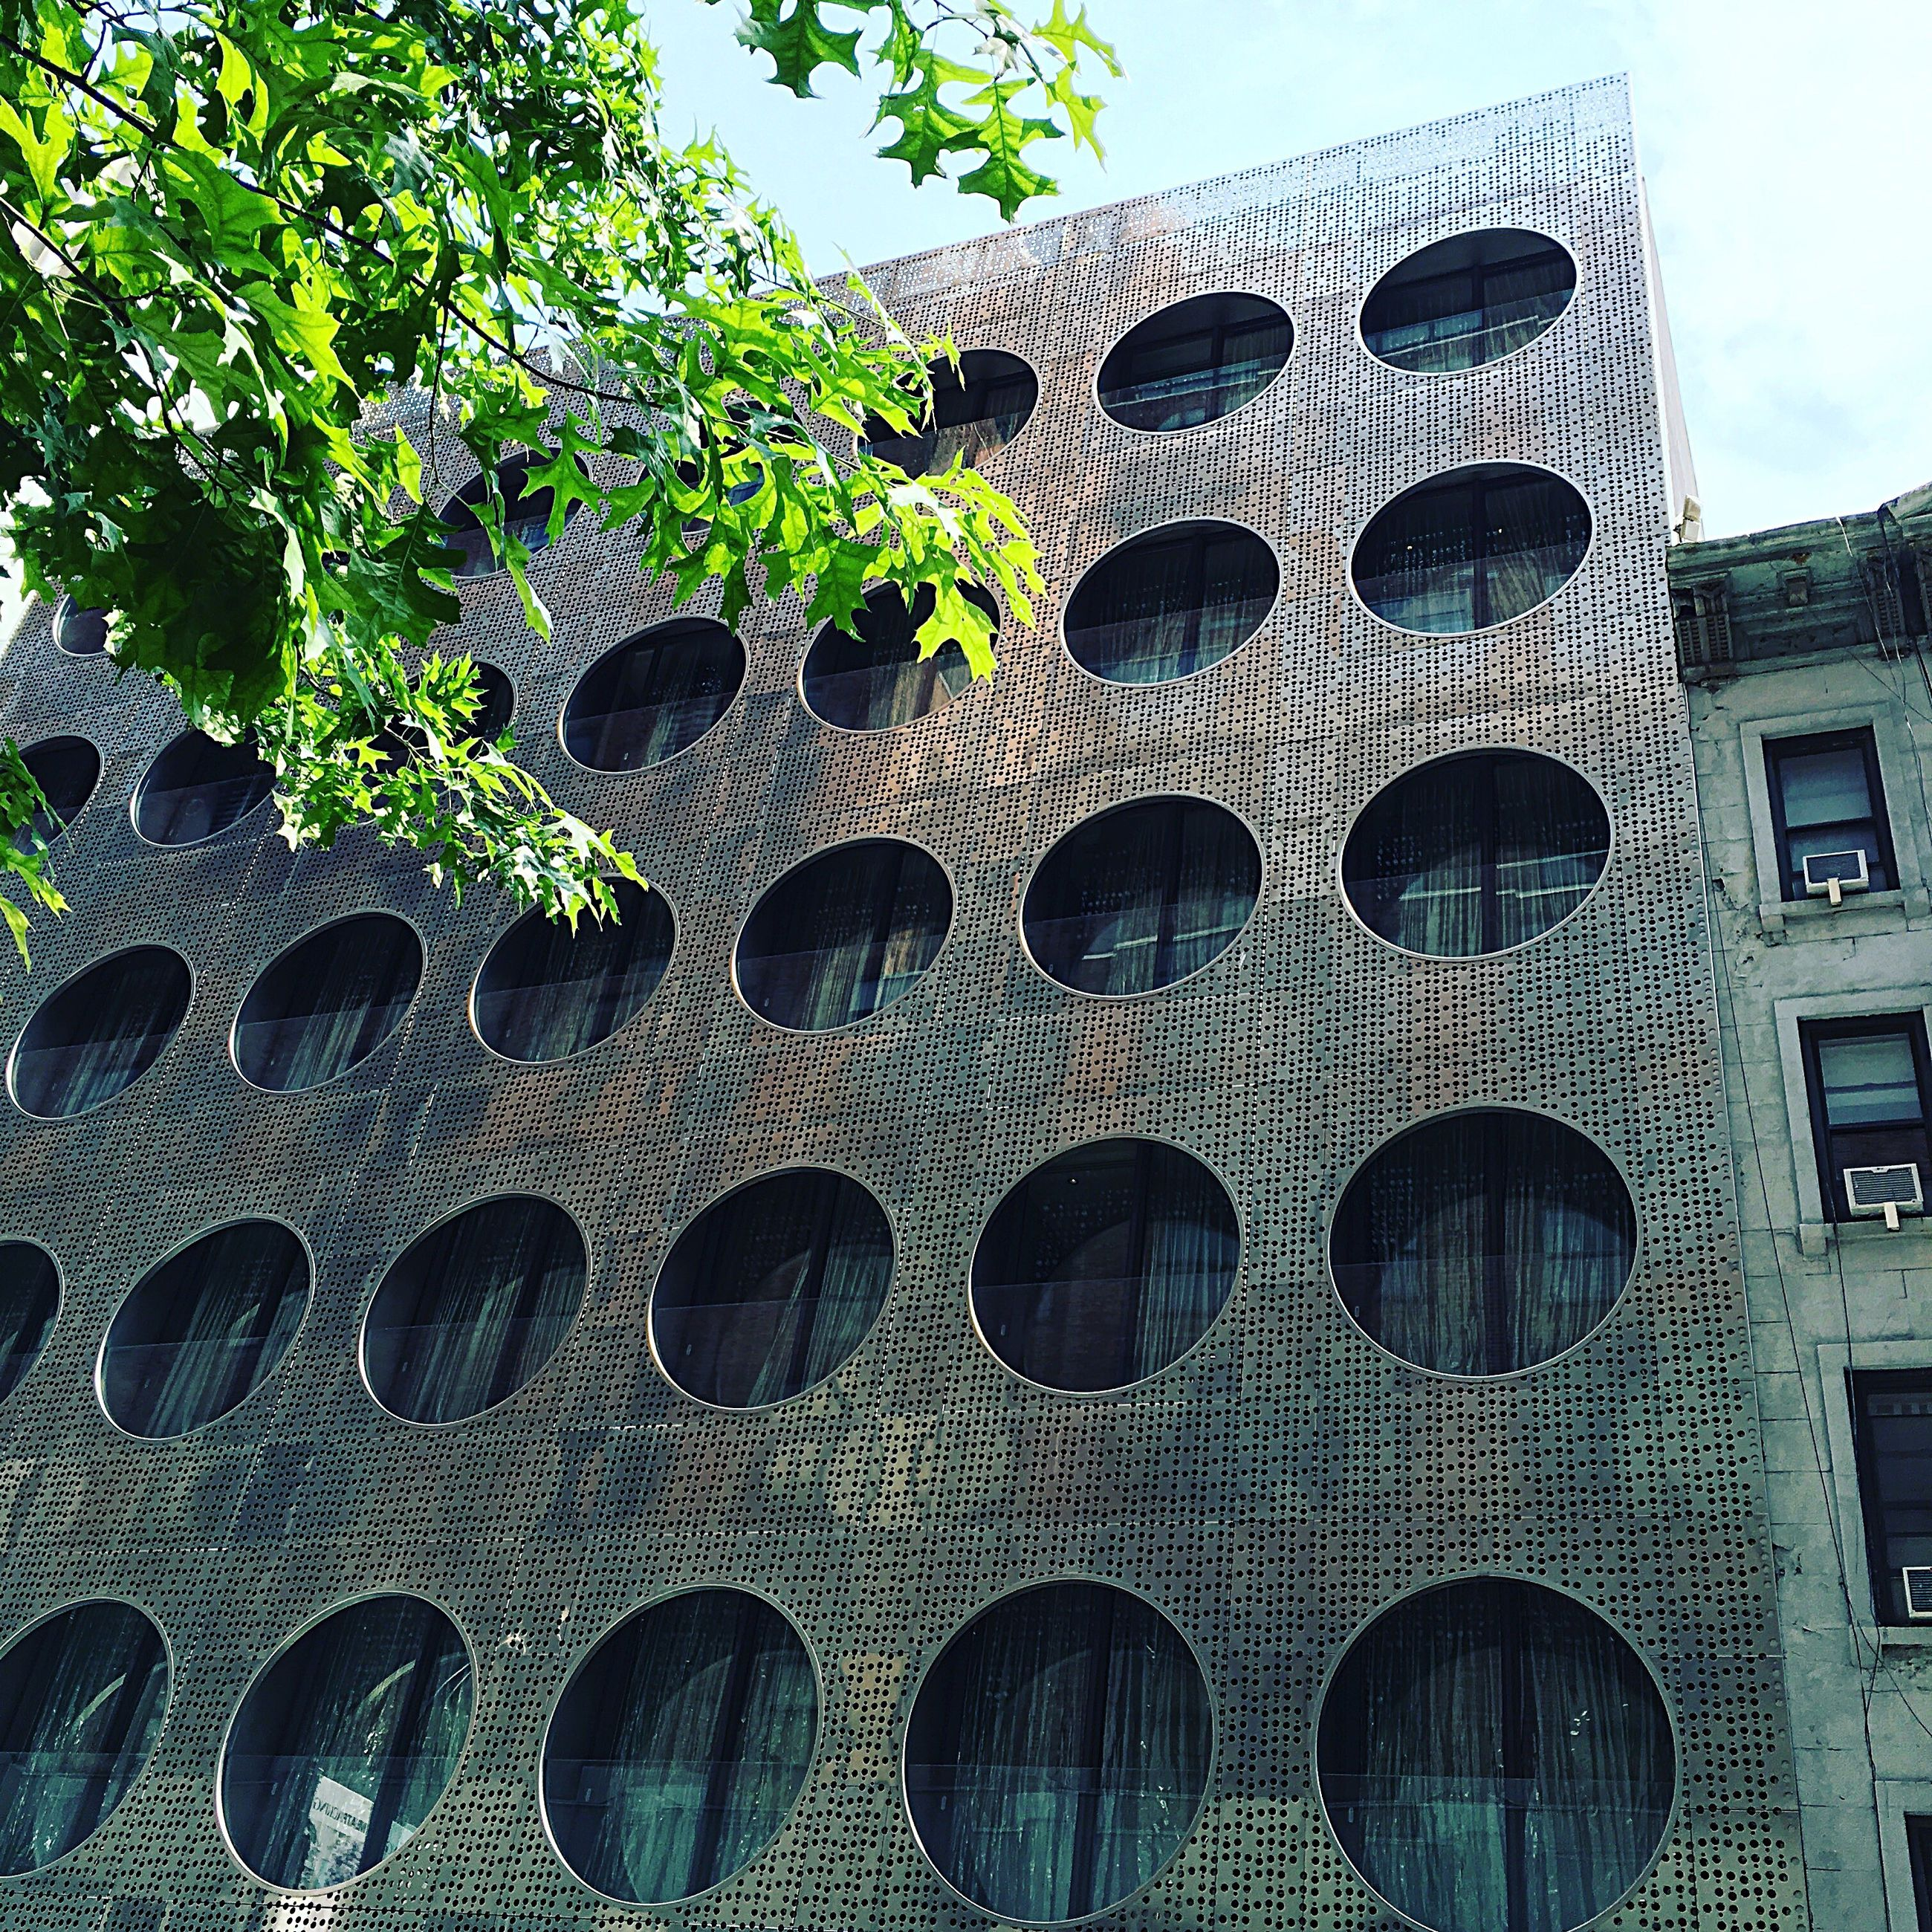 architecture, building exterior, built structure, low angle view, pattern, sky, arch, tree, window, in a row, day, outdoors, no people, repetition, building, growth, design, sunlight, architectural feature, roof